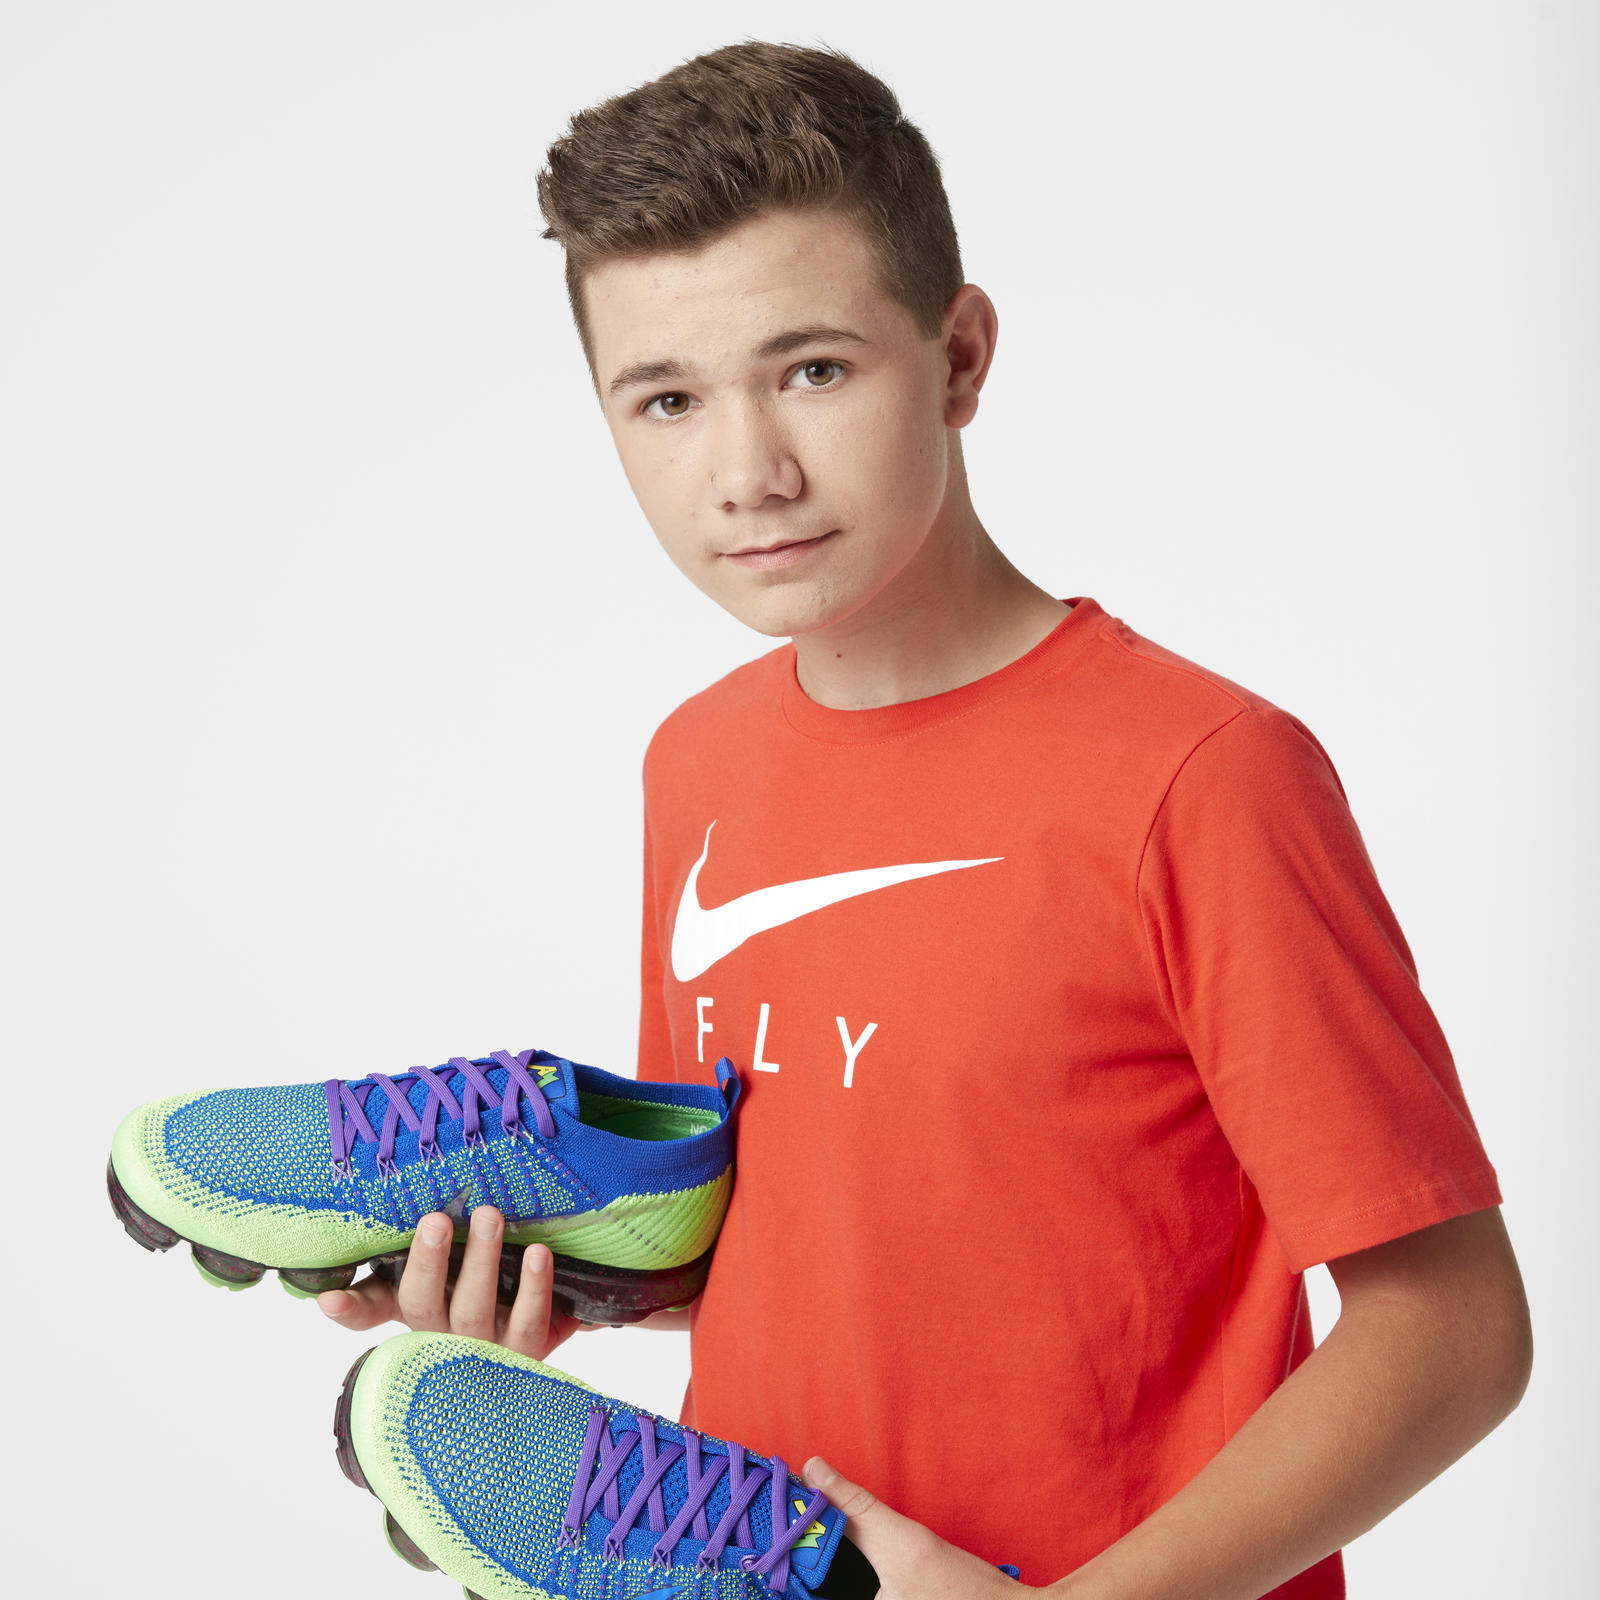 e2cc3a8d0e1d93 What the Doernbecher Freestyle Program Means to the Sneaker Community 24